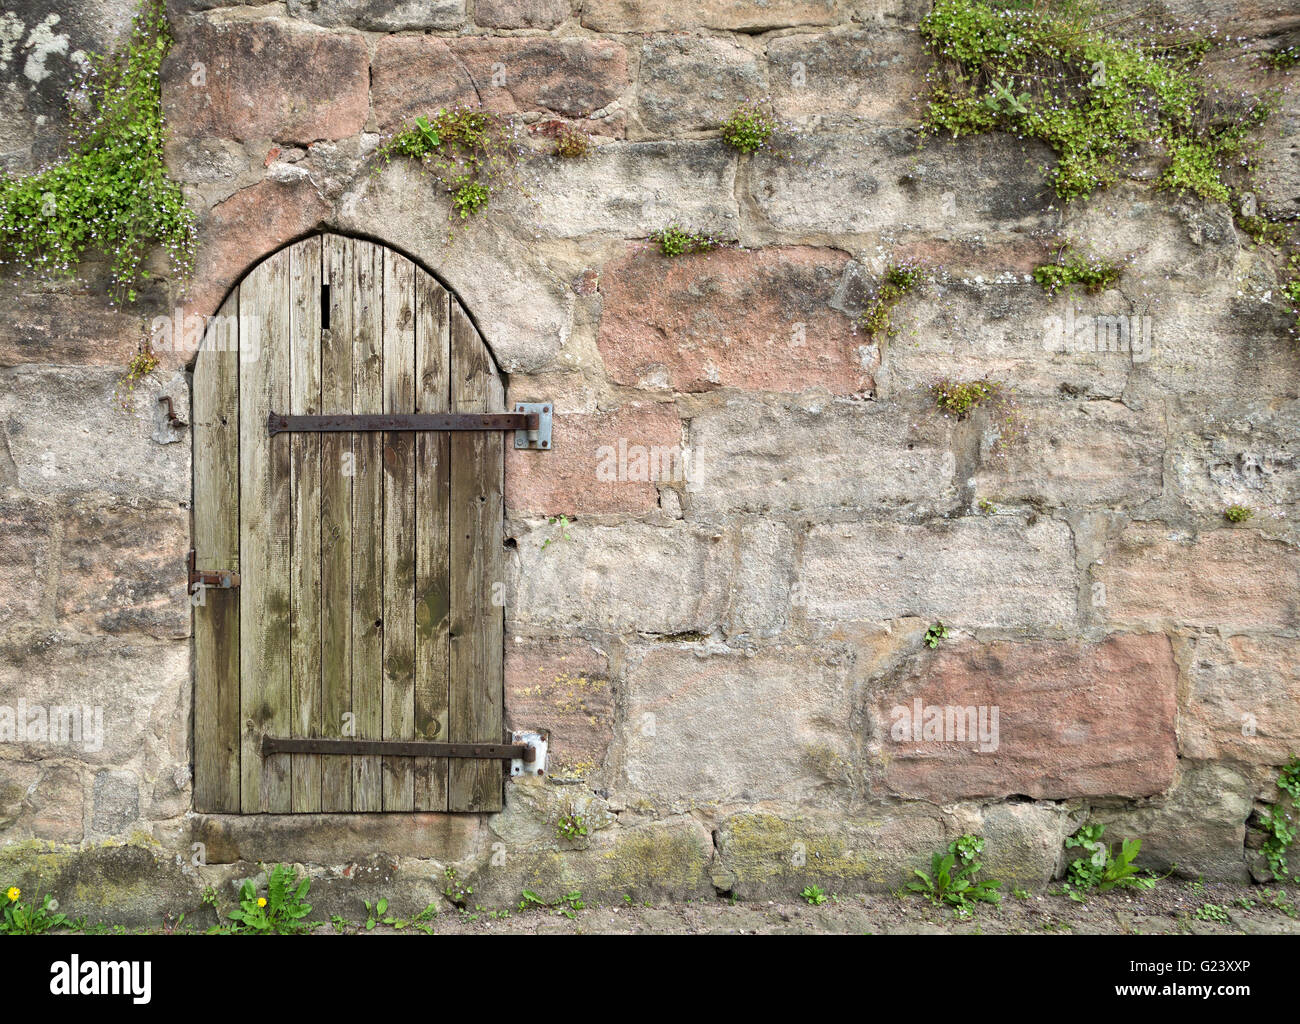 Small Round Wooden Door In An Old Masonry